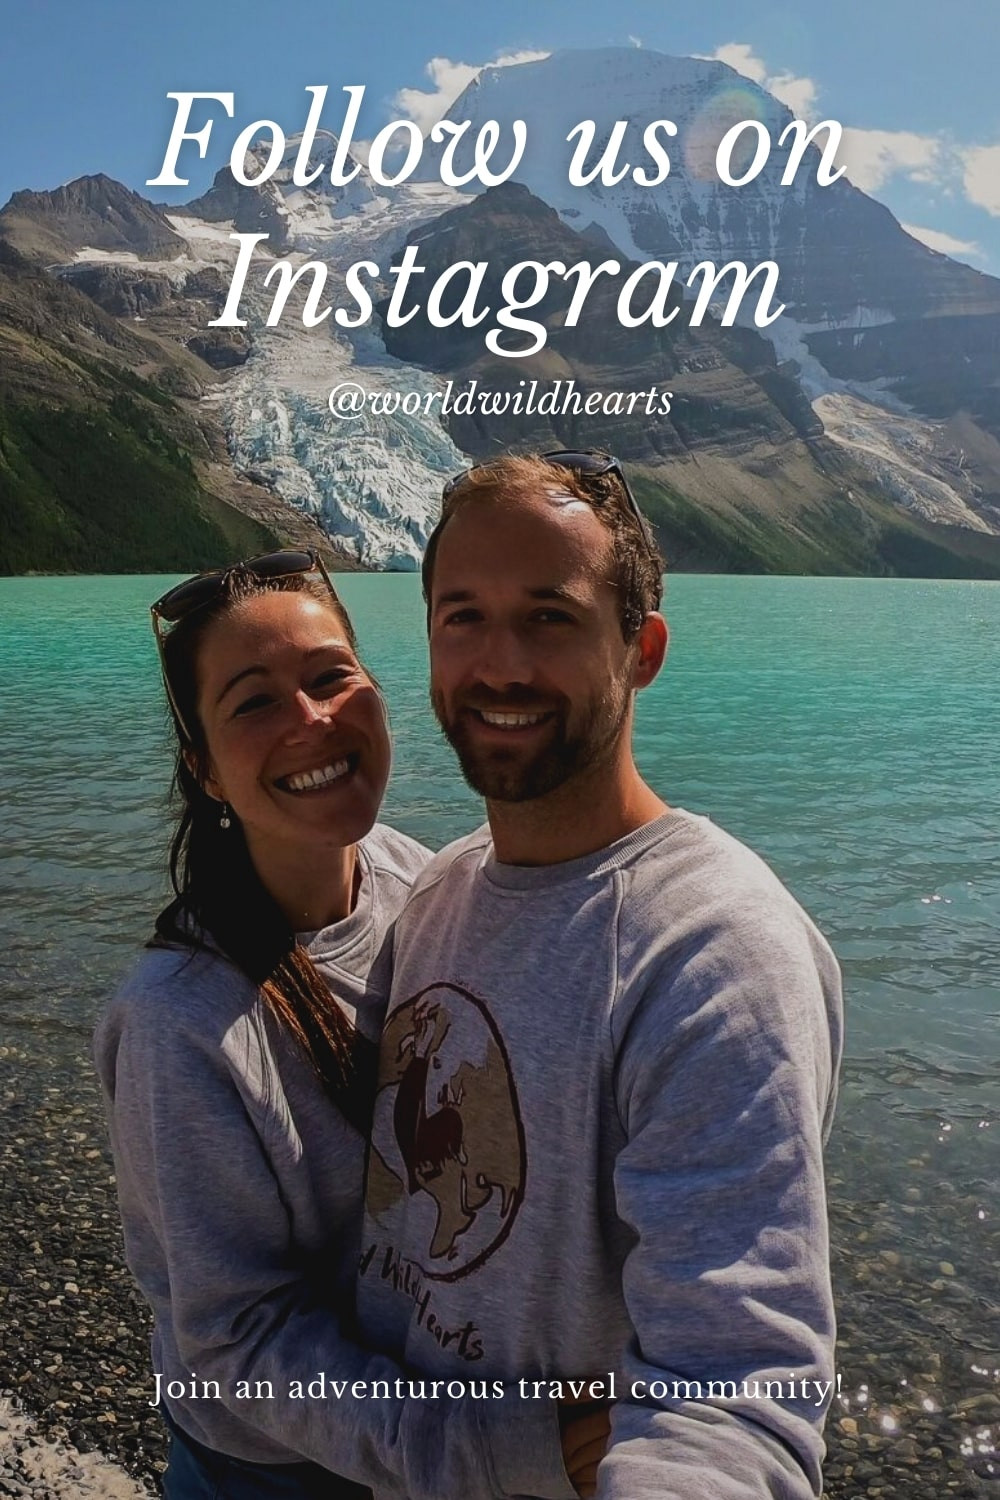 Canadian Rockies travel adventures on Instagram